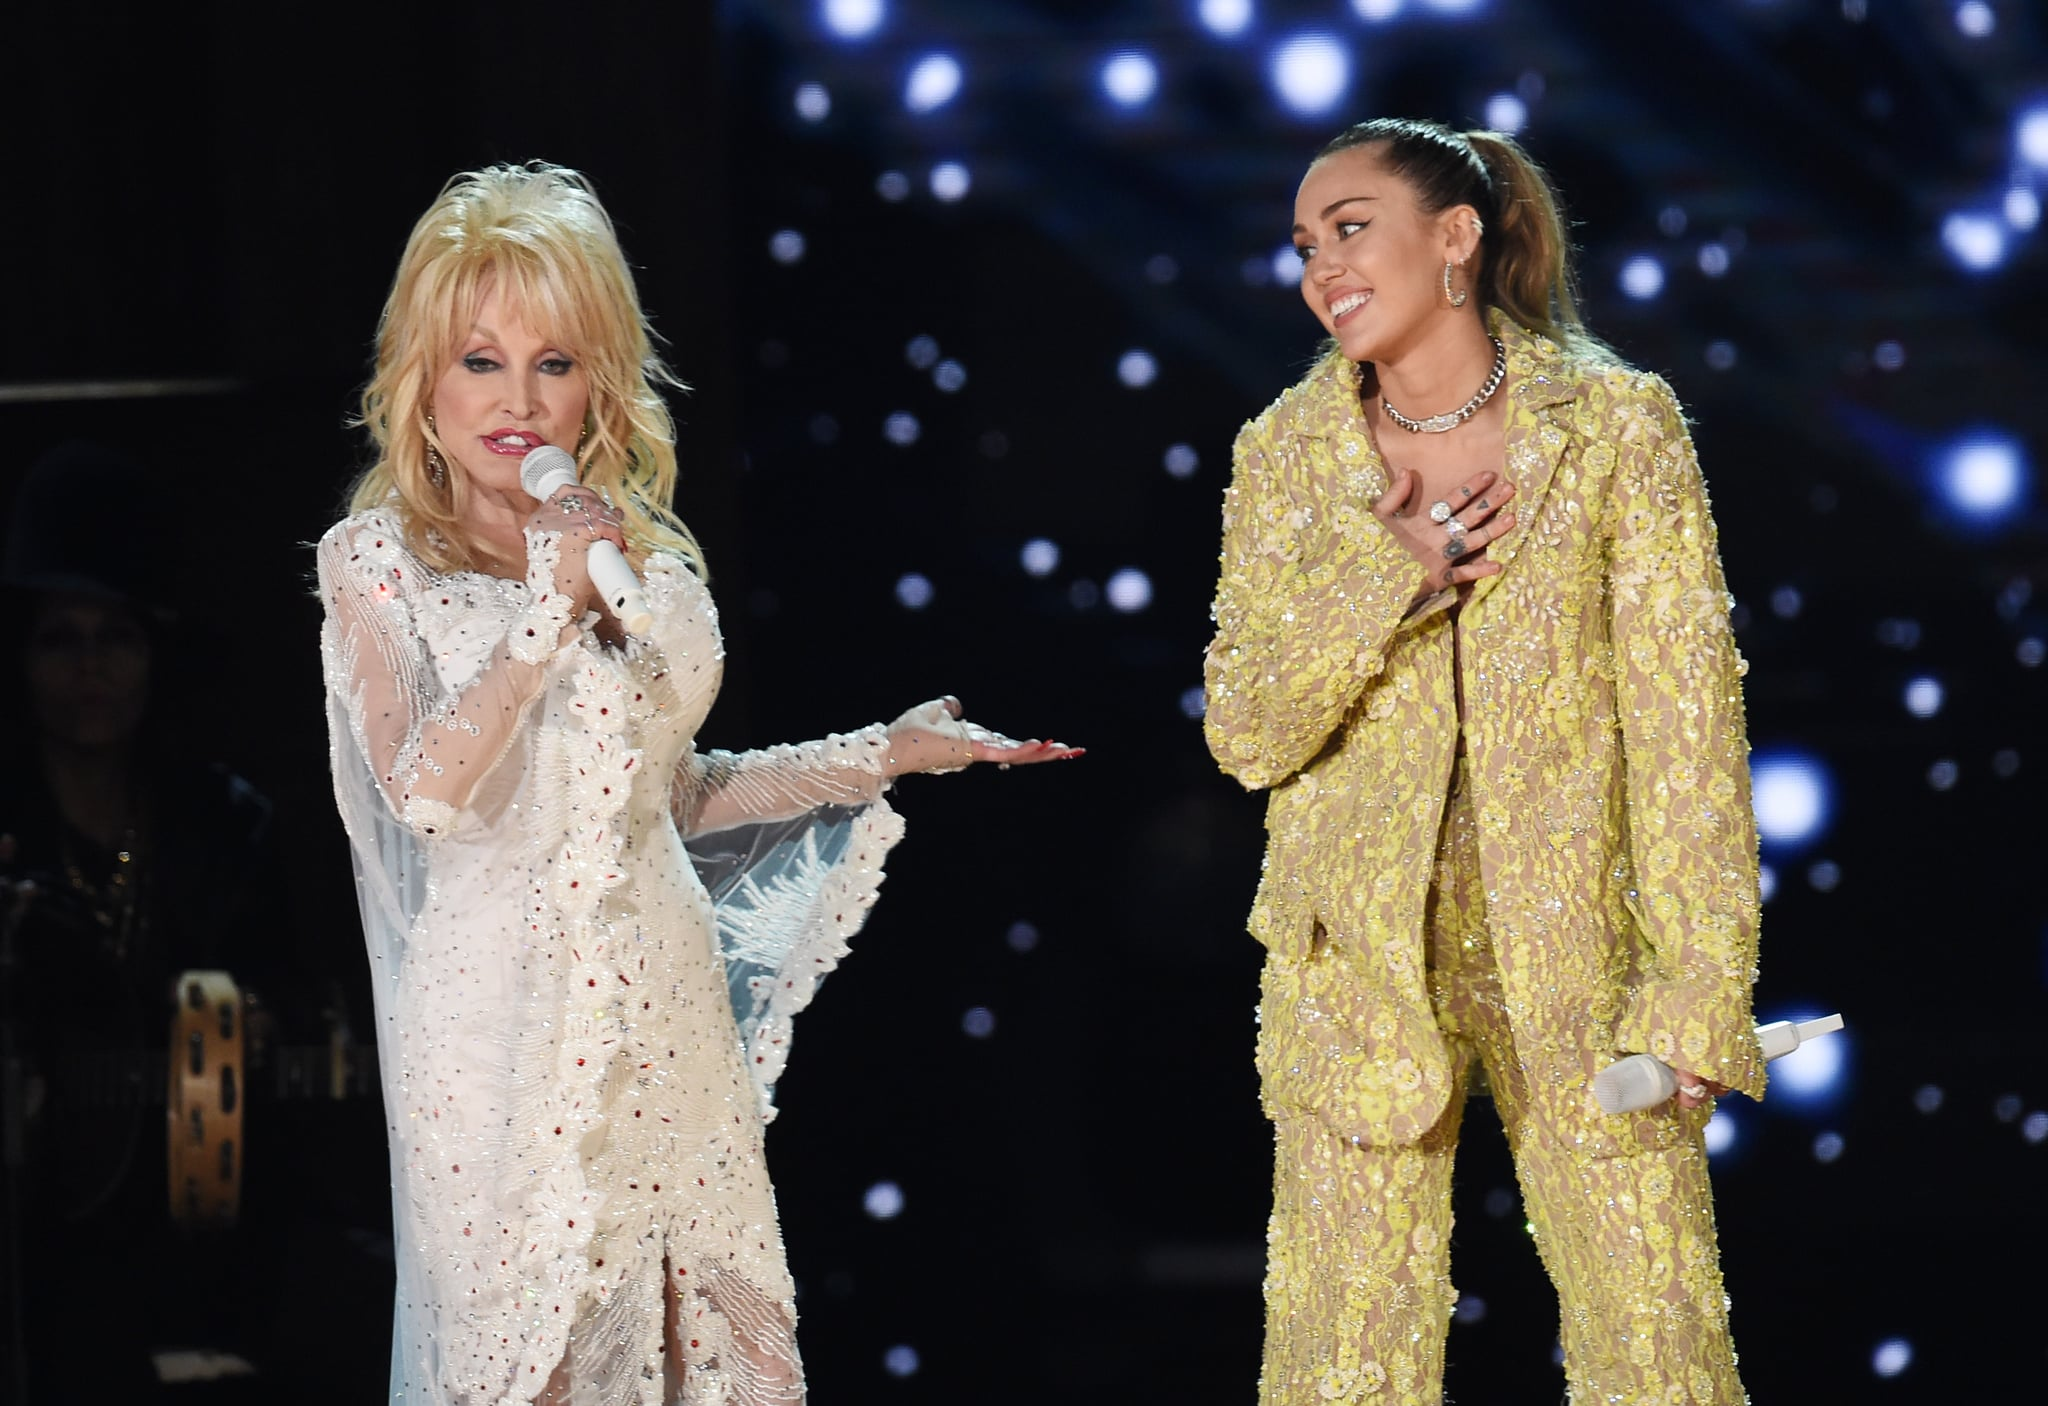 LOS ANGELES, CA - FEBRUARY 10:  Dolly Parton (L) and Miley Cyrus perform onstage during the 61st Annual GRAMMY Awards at Staples Centre on February 10, 2019 in Los Angeles, California.  (Photo by Kevin Winter/Getty Images for The Recording Academy)